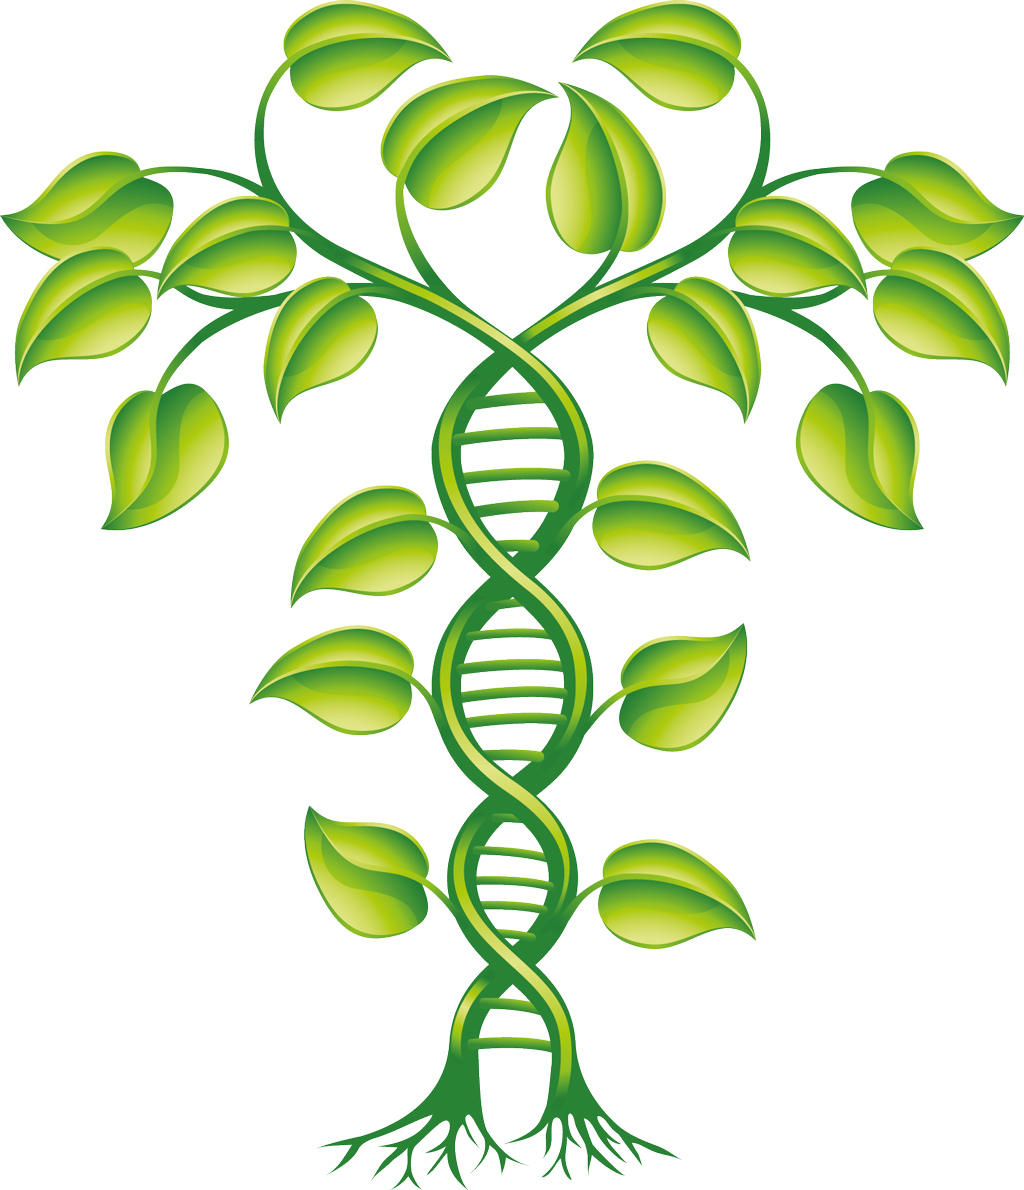 Plant protein structure database will help to uncover unknown functions of pl